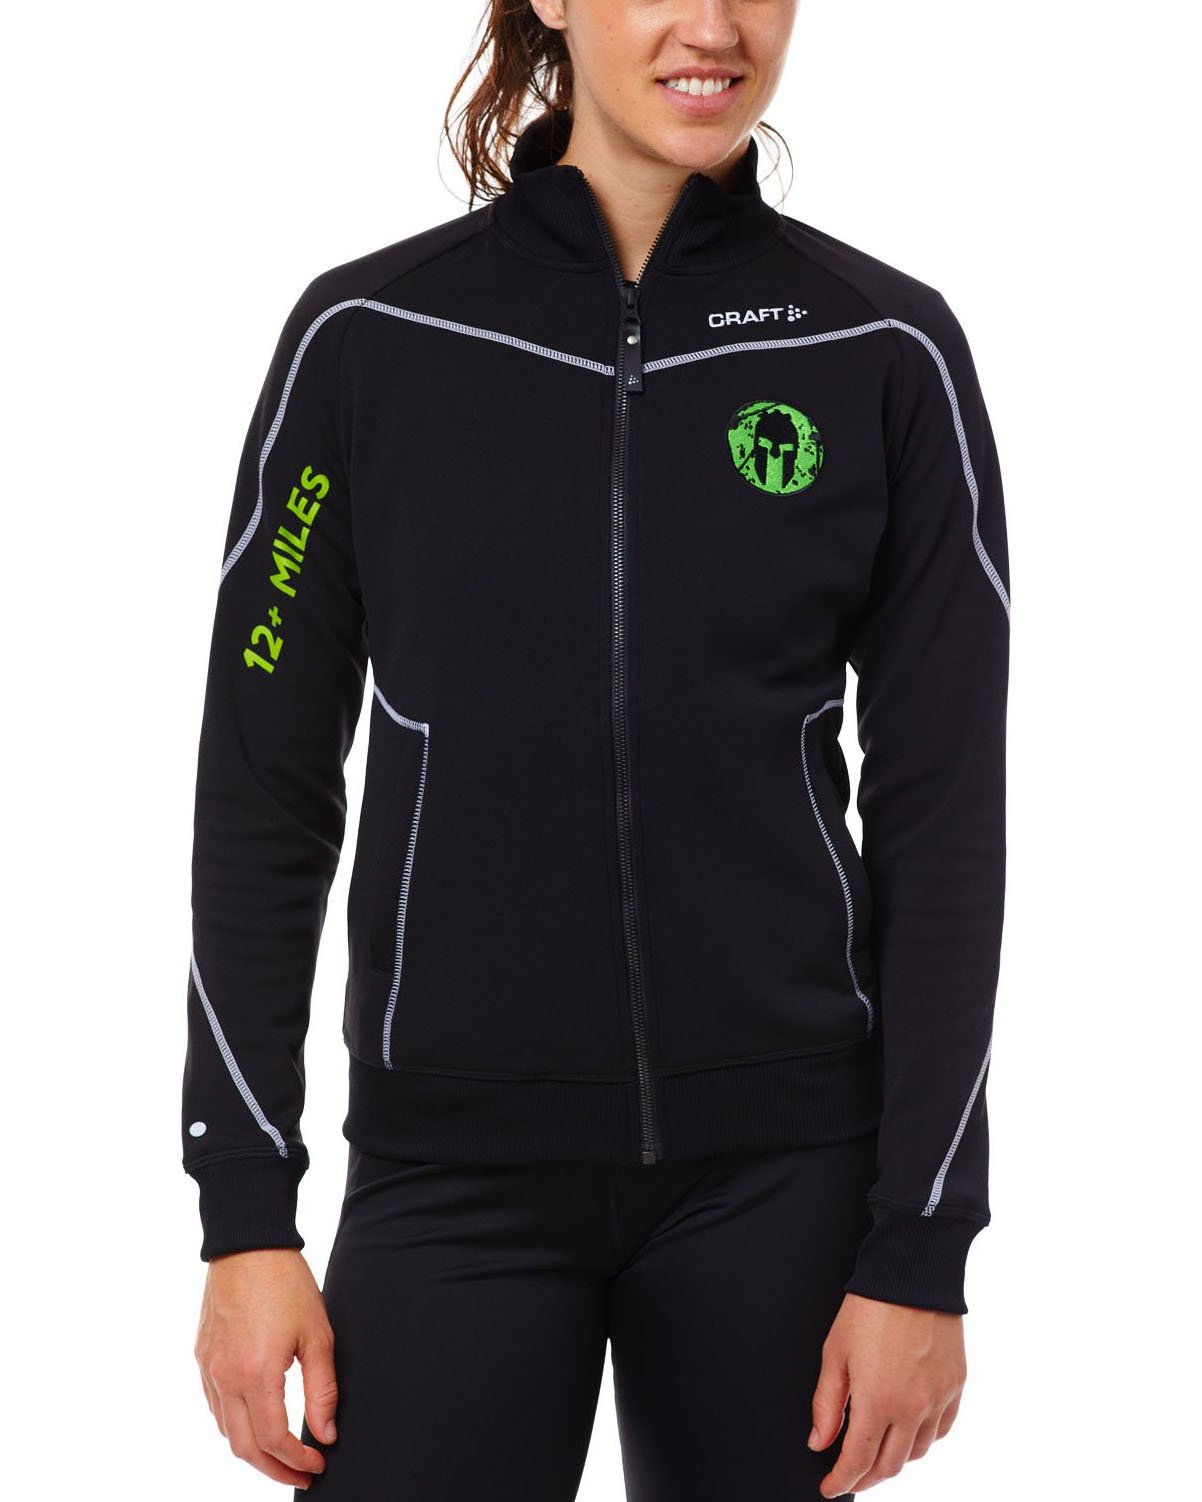 CRAFT SPARTAN By CRAFT Beast Jacket - Women's Black XS